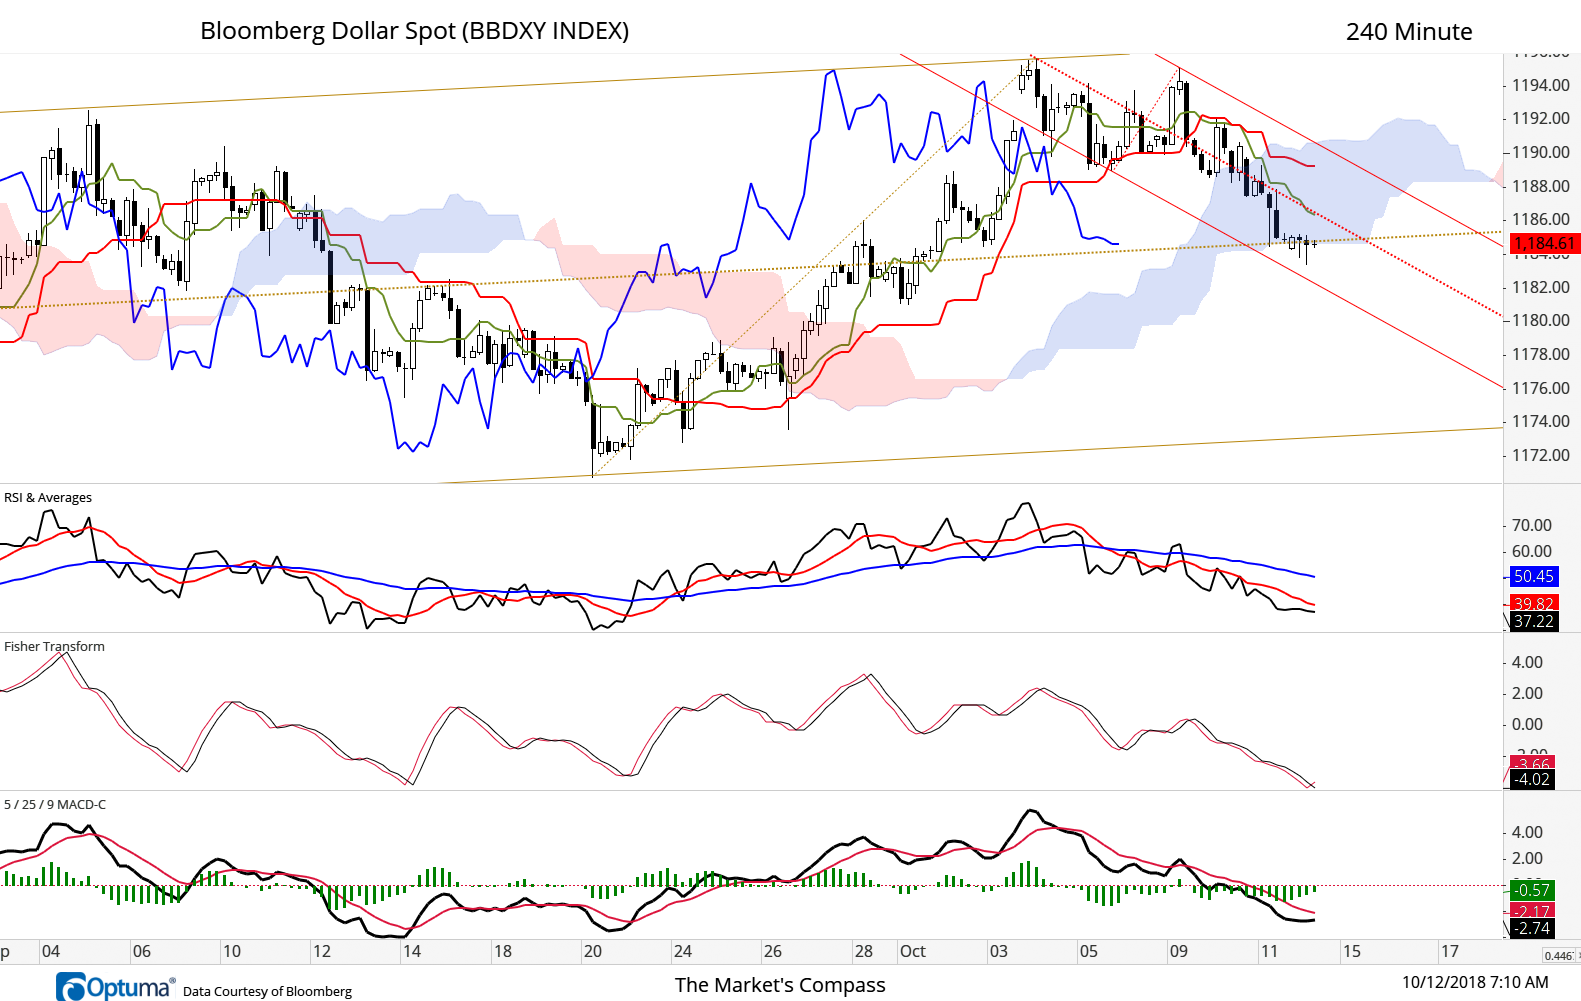 BBDXY just hanging on to the Median Line of the longer term Schiff Pitchfork and the bottom of the cloud. Not a surprise… Fisher Transform cyclic bottom? We will see if it can retake the ground above Median Line of Standard Pitchfork (red dotted line).